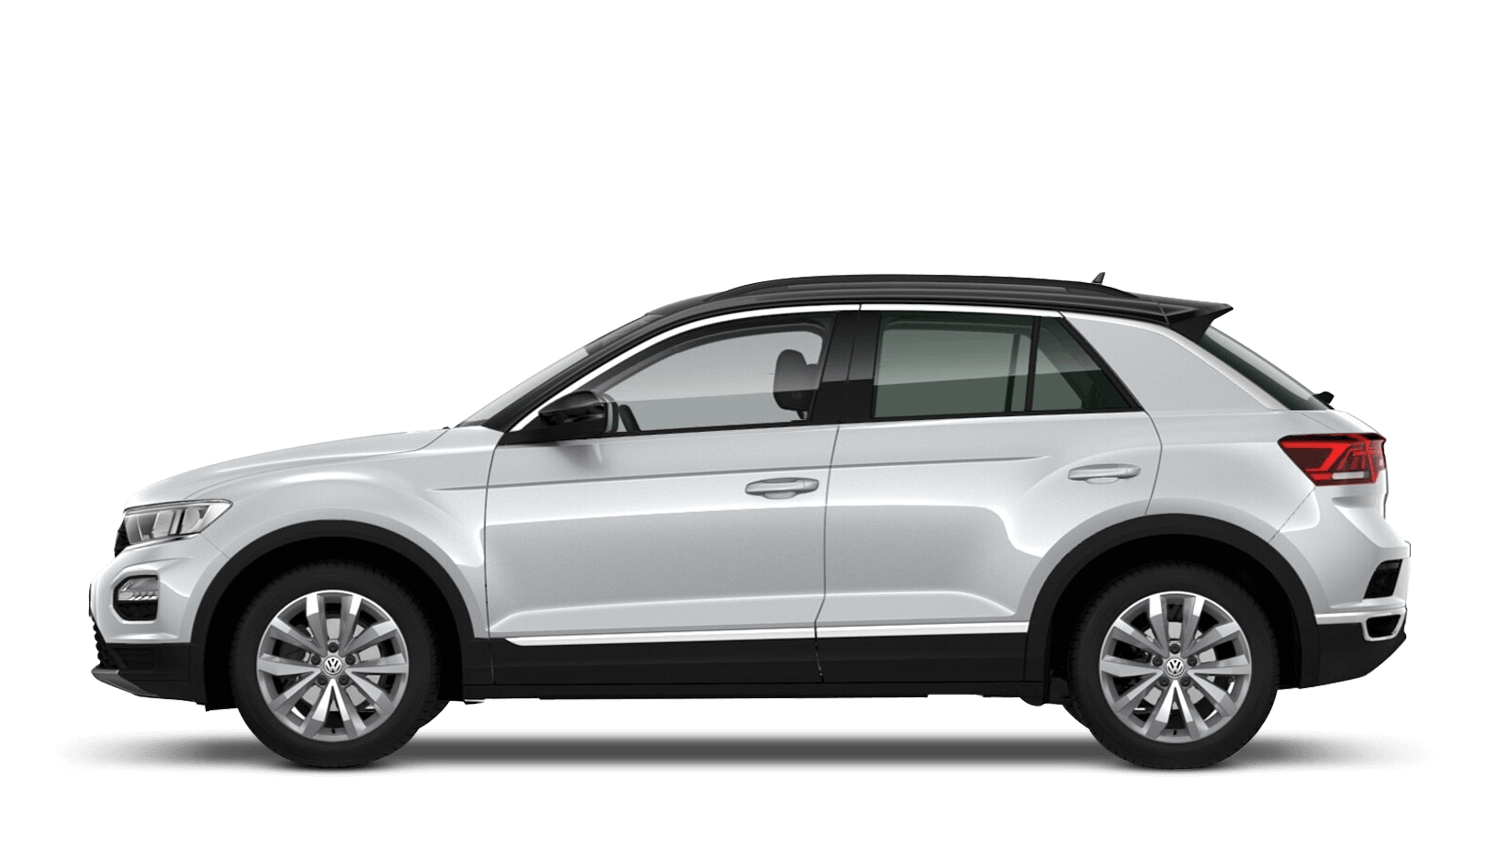 White Silver with Black Roof (Metallic / Pearl) Volkswagen T Roc